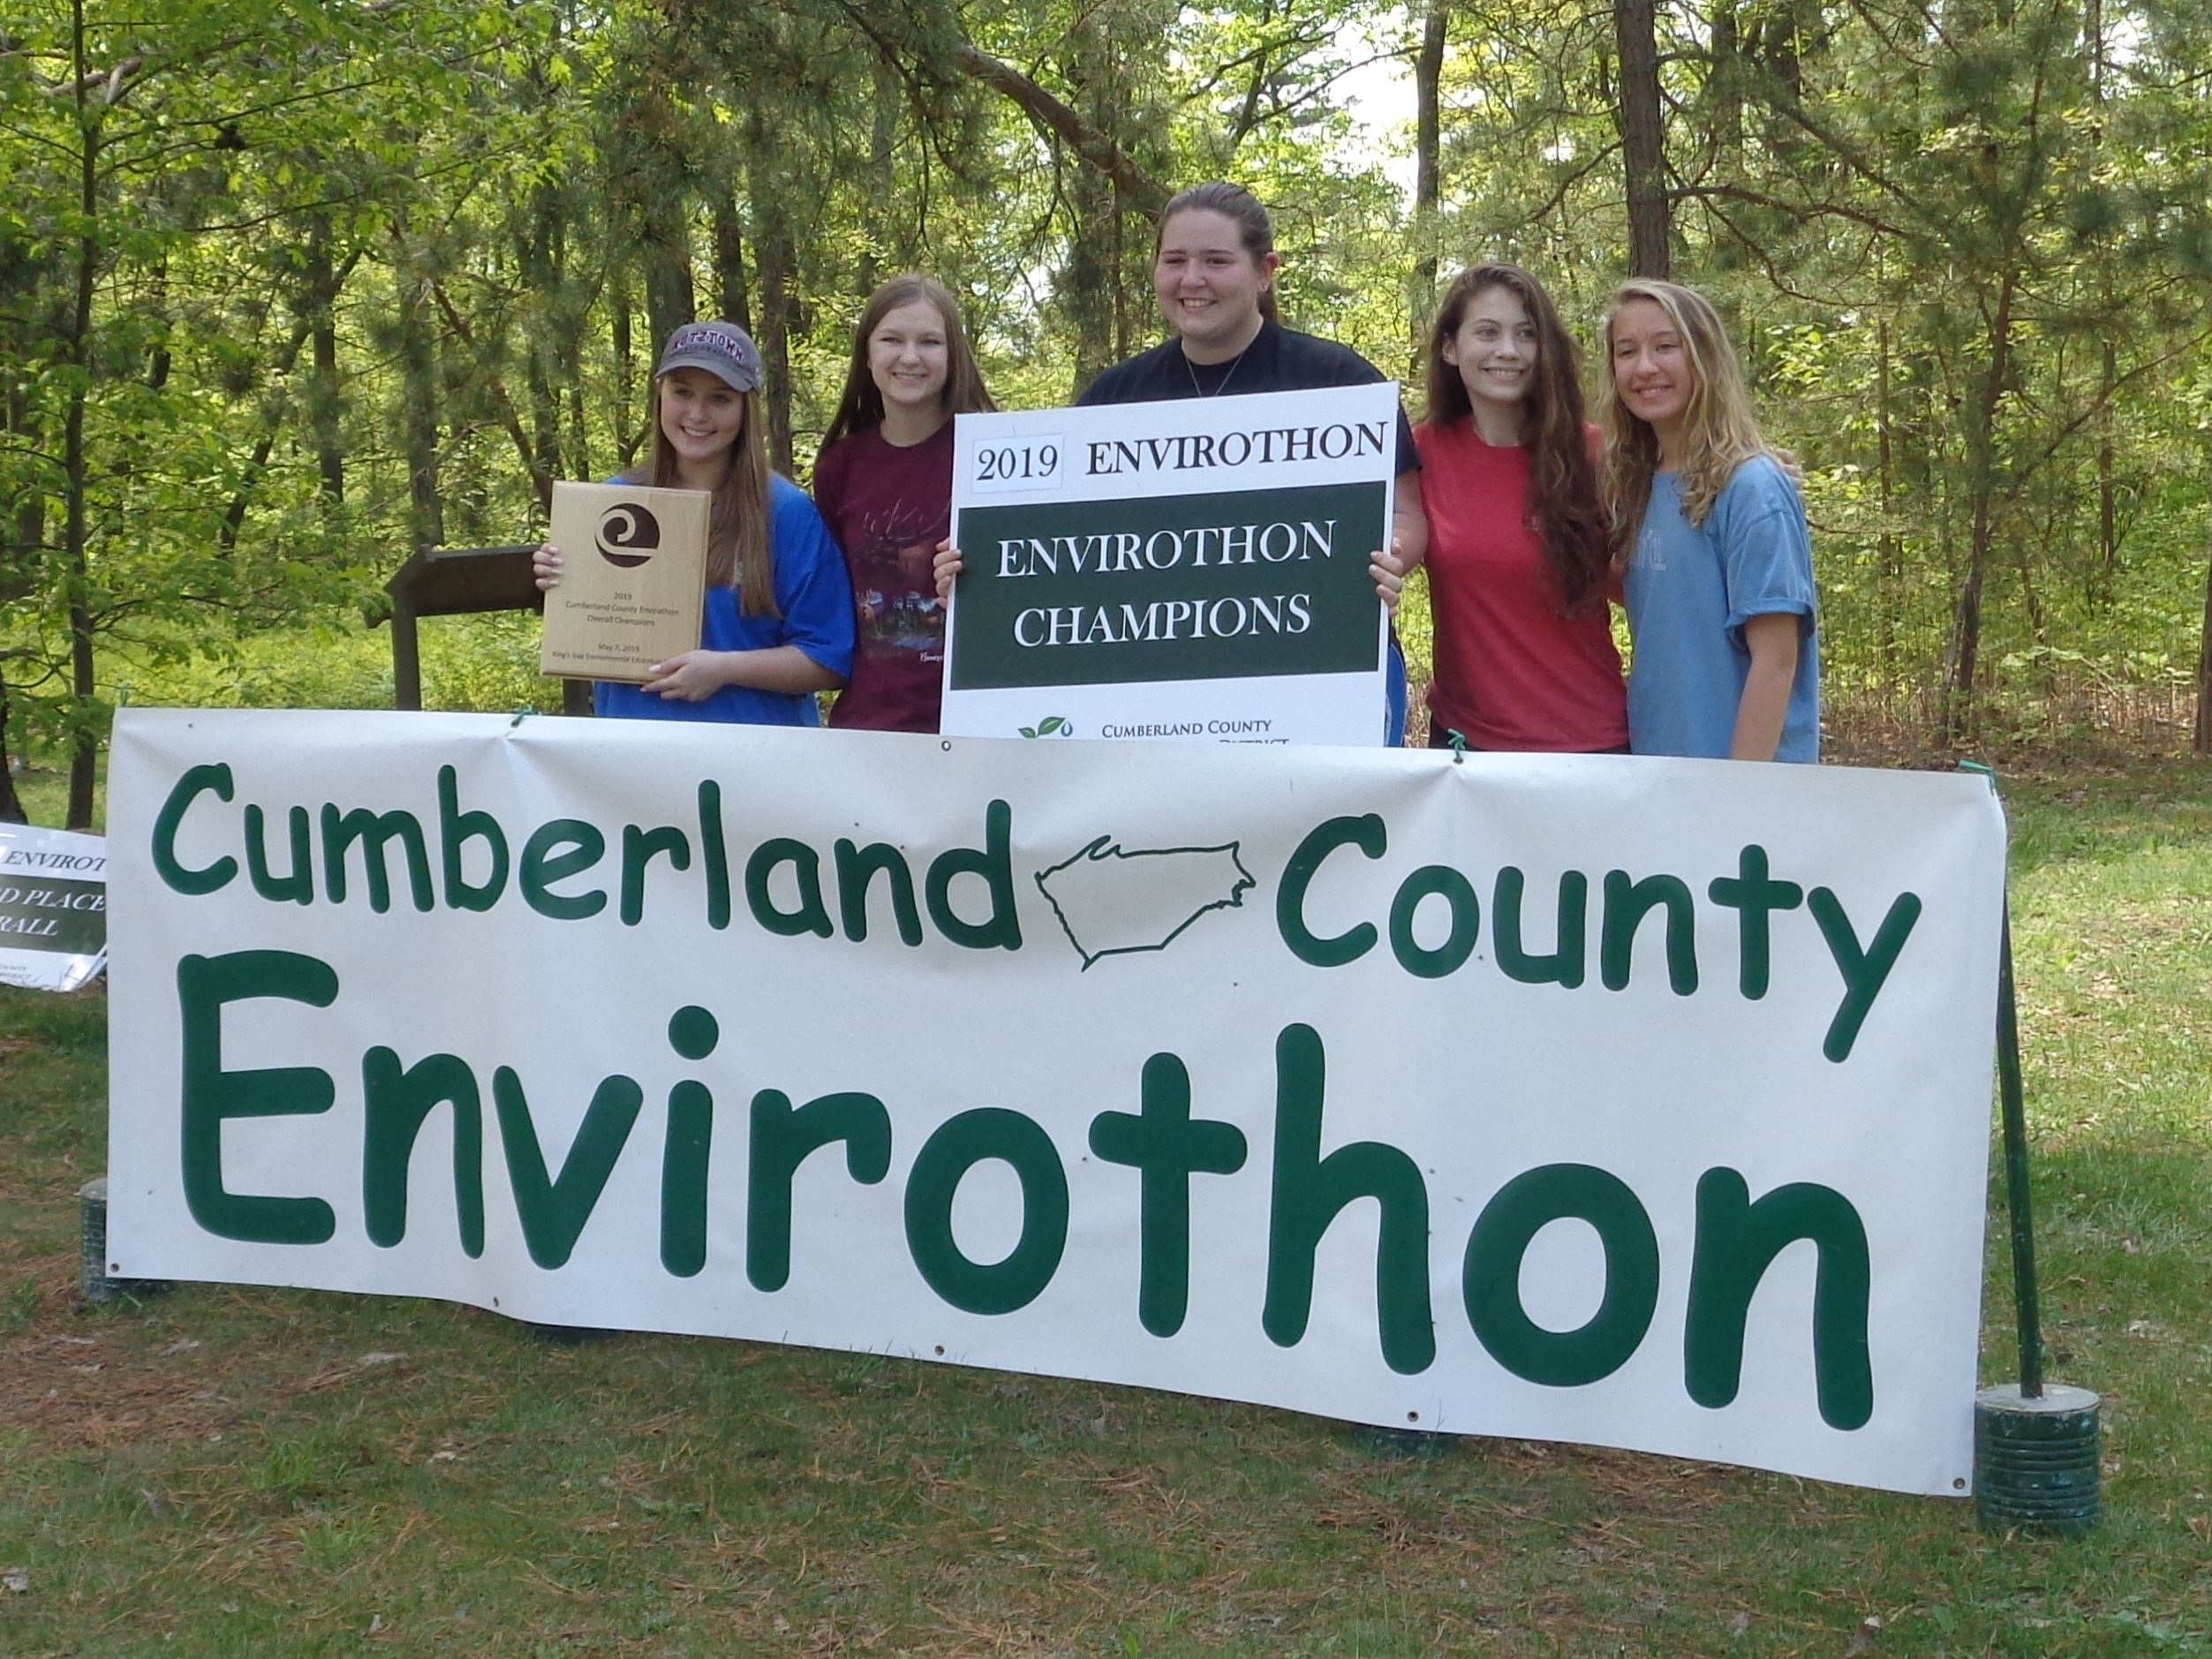 2019 Cumberland County Envirothon Champions-Hellbenders from CVHS